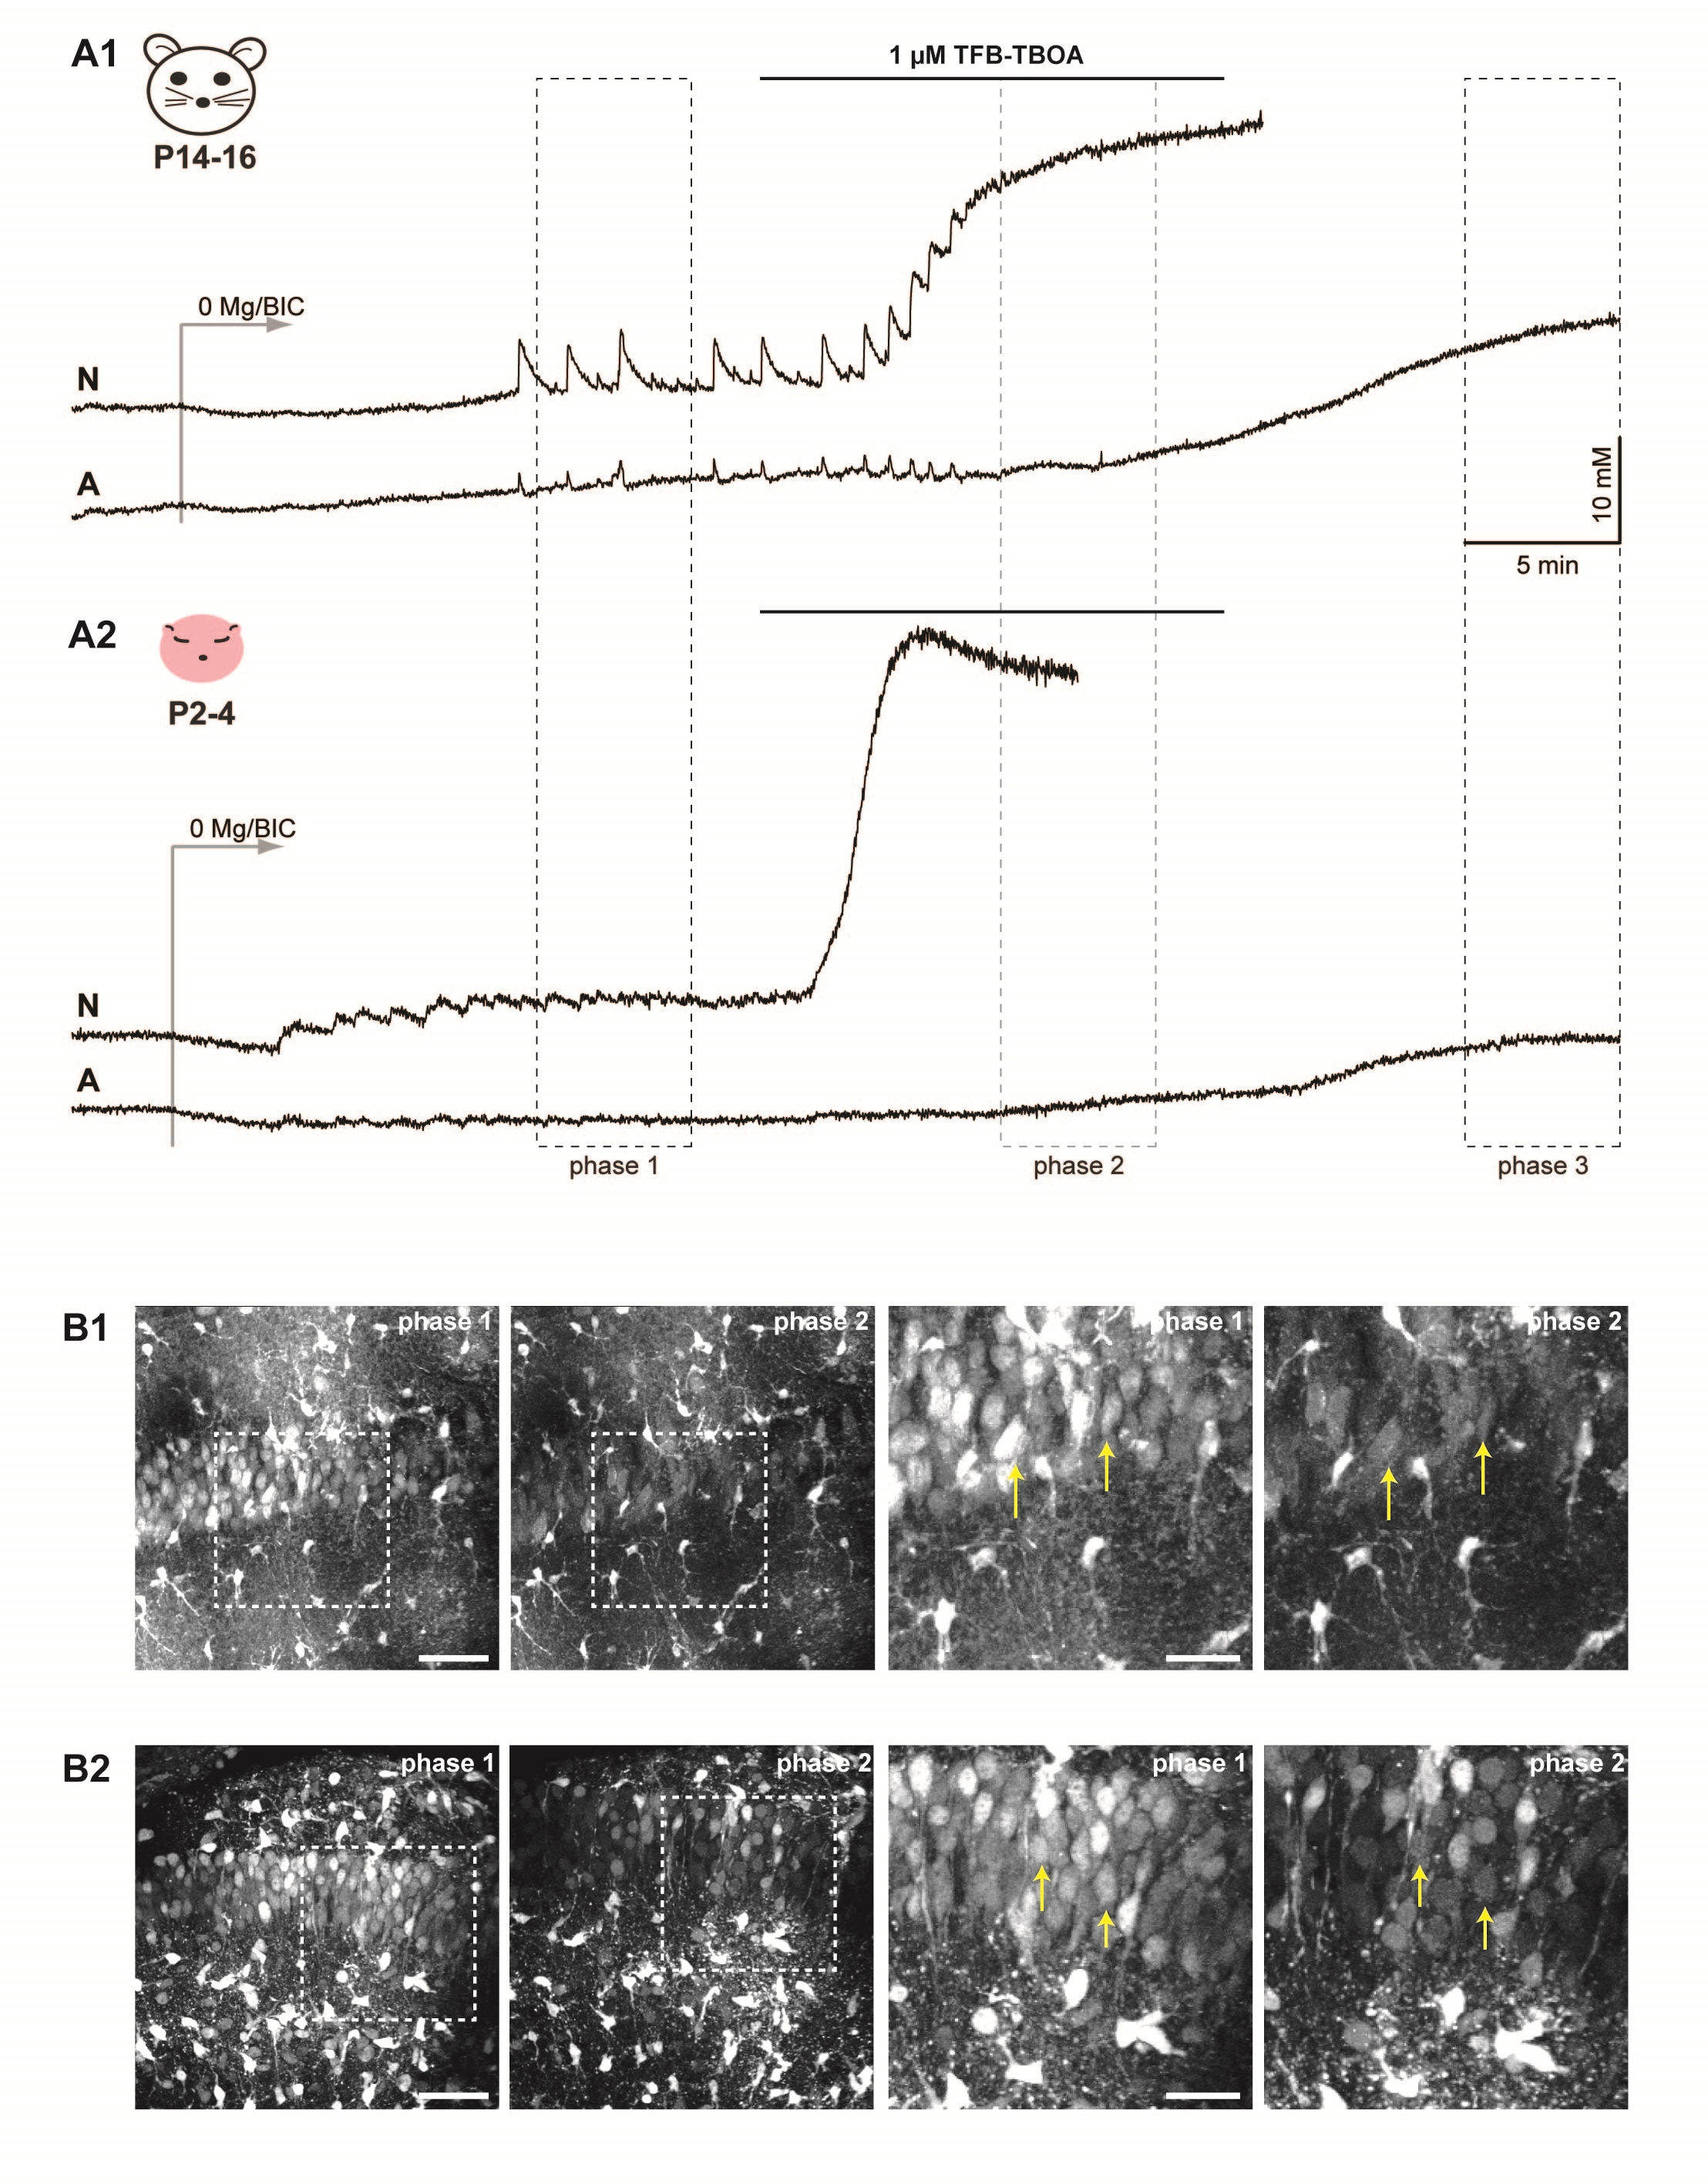 Figure 4. Effects of blocking GLAST and GLT-1 by TFB-TBOA. A) Effect of TFB-TBOA on sodium oscillations and sodium homeostasis in P14-16 (A1) and neonatal slices (A2). B) Maximum projection images of z-stacks taken at a two-photon microscope in phase 1 (0 Mg2+/BIC) and 2 (TFB-TBOA) at two different magnifications in P14-16 (B1) and neonatal slices (B2). Boxes indicate regions shown enlarged on the right. Arrows point to cells that experienced significant dye loss in phase 2. Scale bars: 50 µm (left) and 25 µm (right).